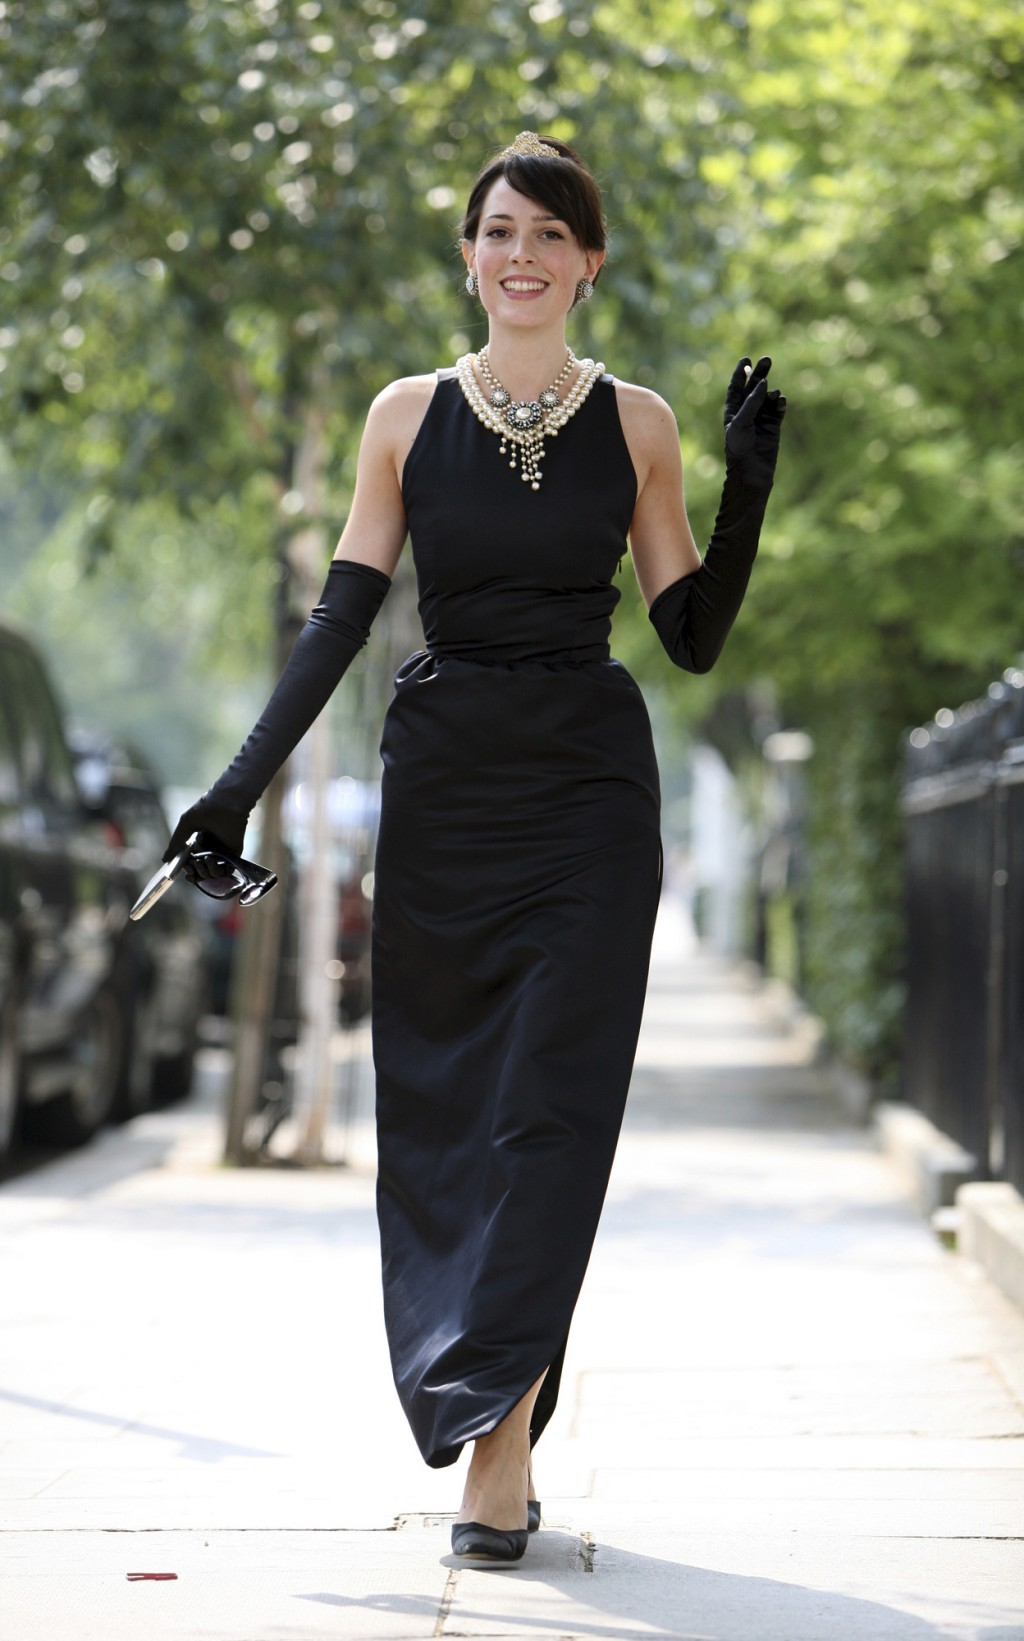 FILE- In this July 26, 2006, file photo, model Romilly Collins wears the black Givenchy dress made for actress Audrey Hepburn in the classic 1961 film